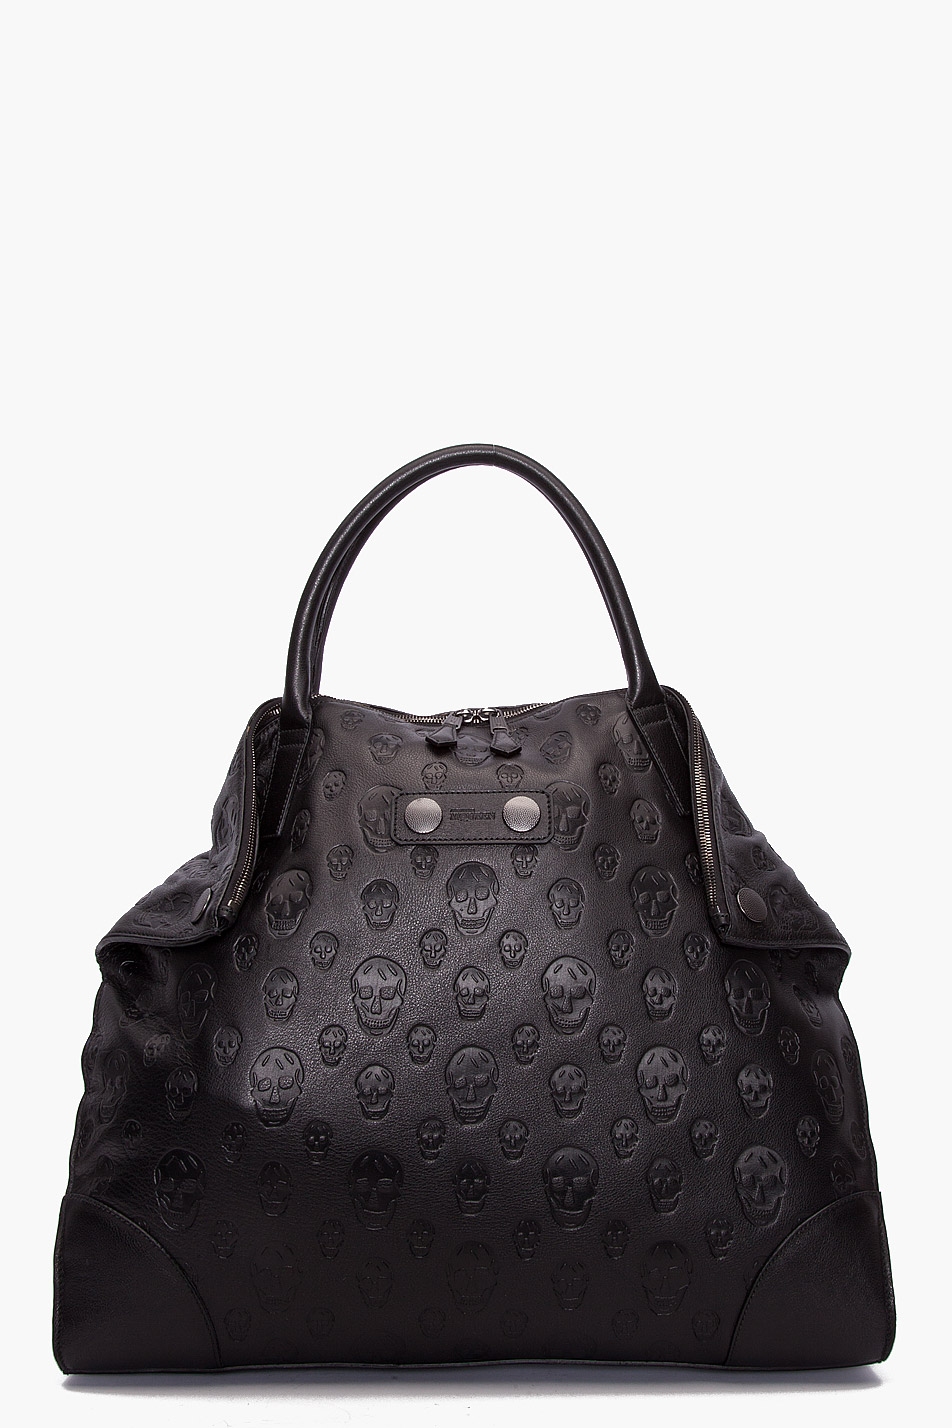 be2177f1a750 Lyst - Alexander McQueen Embossed Skull Tote in Black